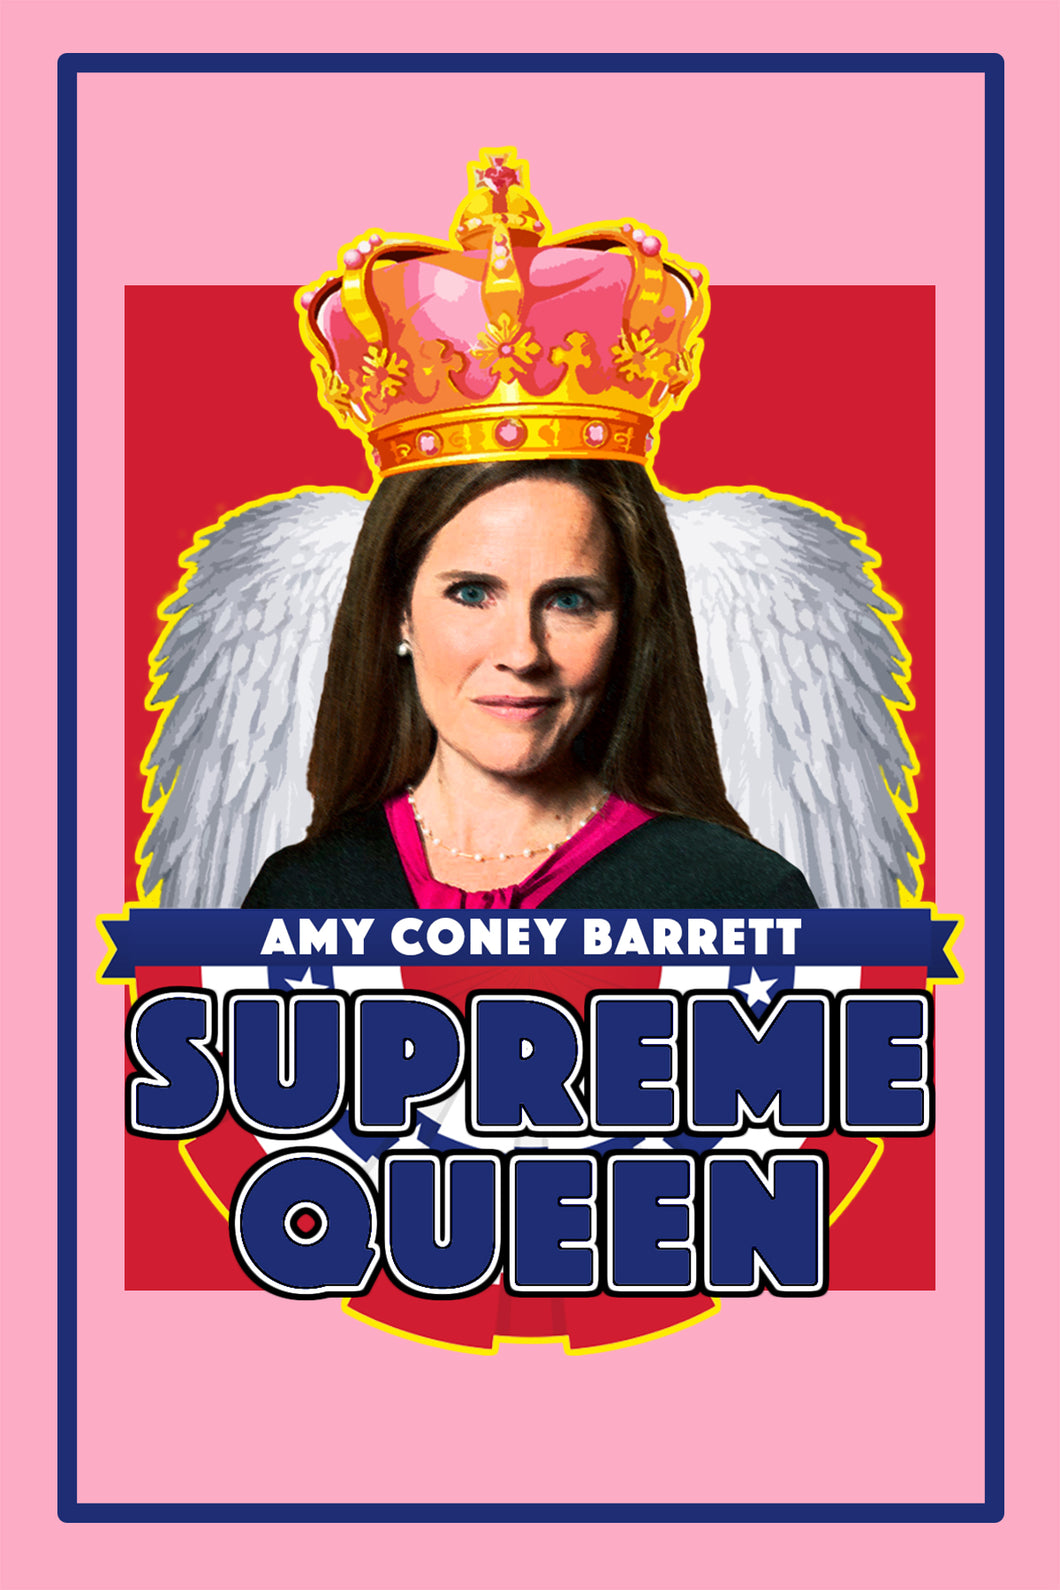 ACB Supreme Queen Poster (24